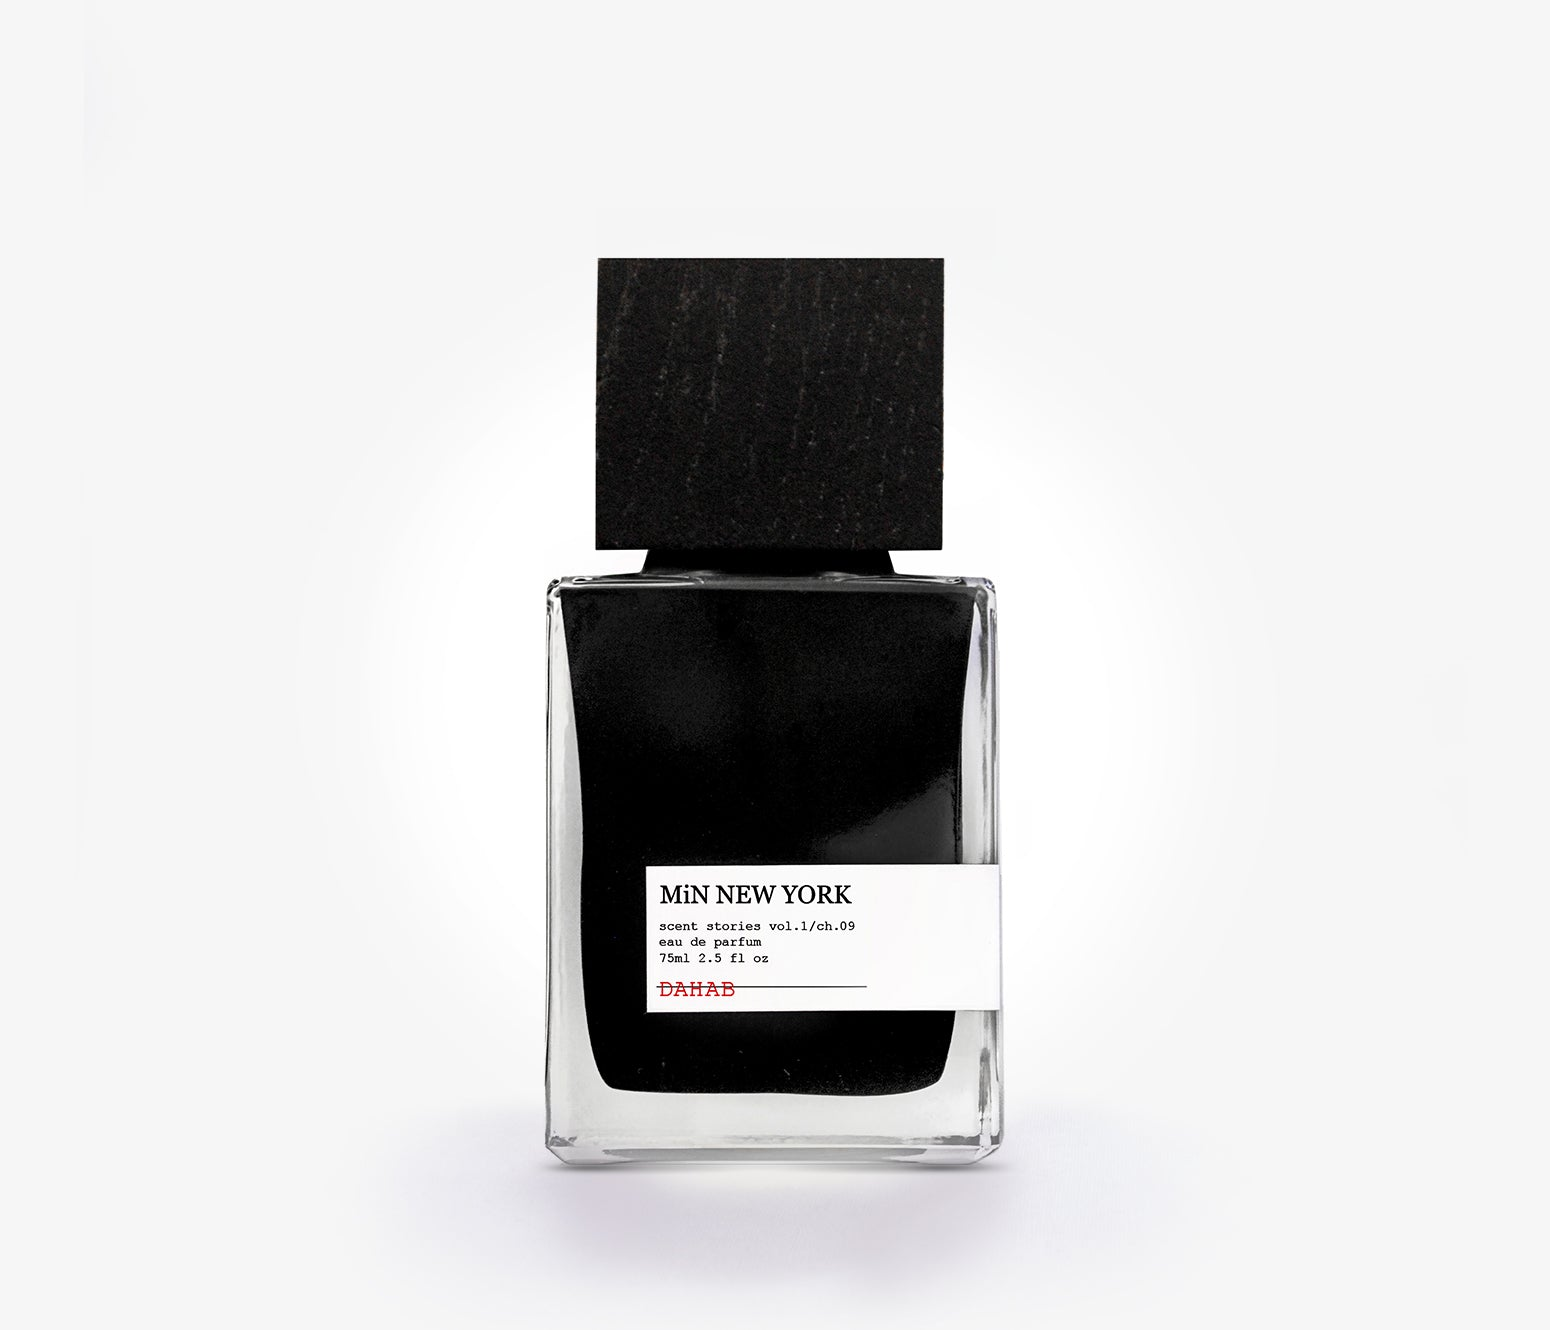 MiN New York - Dahab - 75ml - GZQ001 - Product Image - Fragrance - Les Senteurs